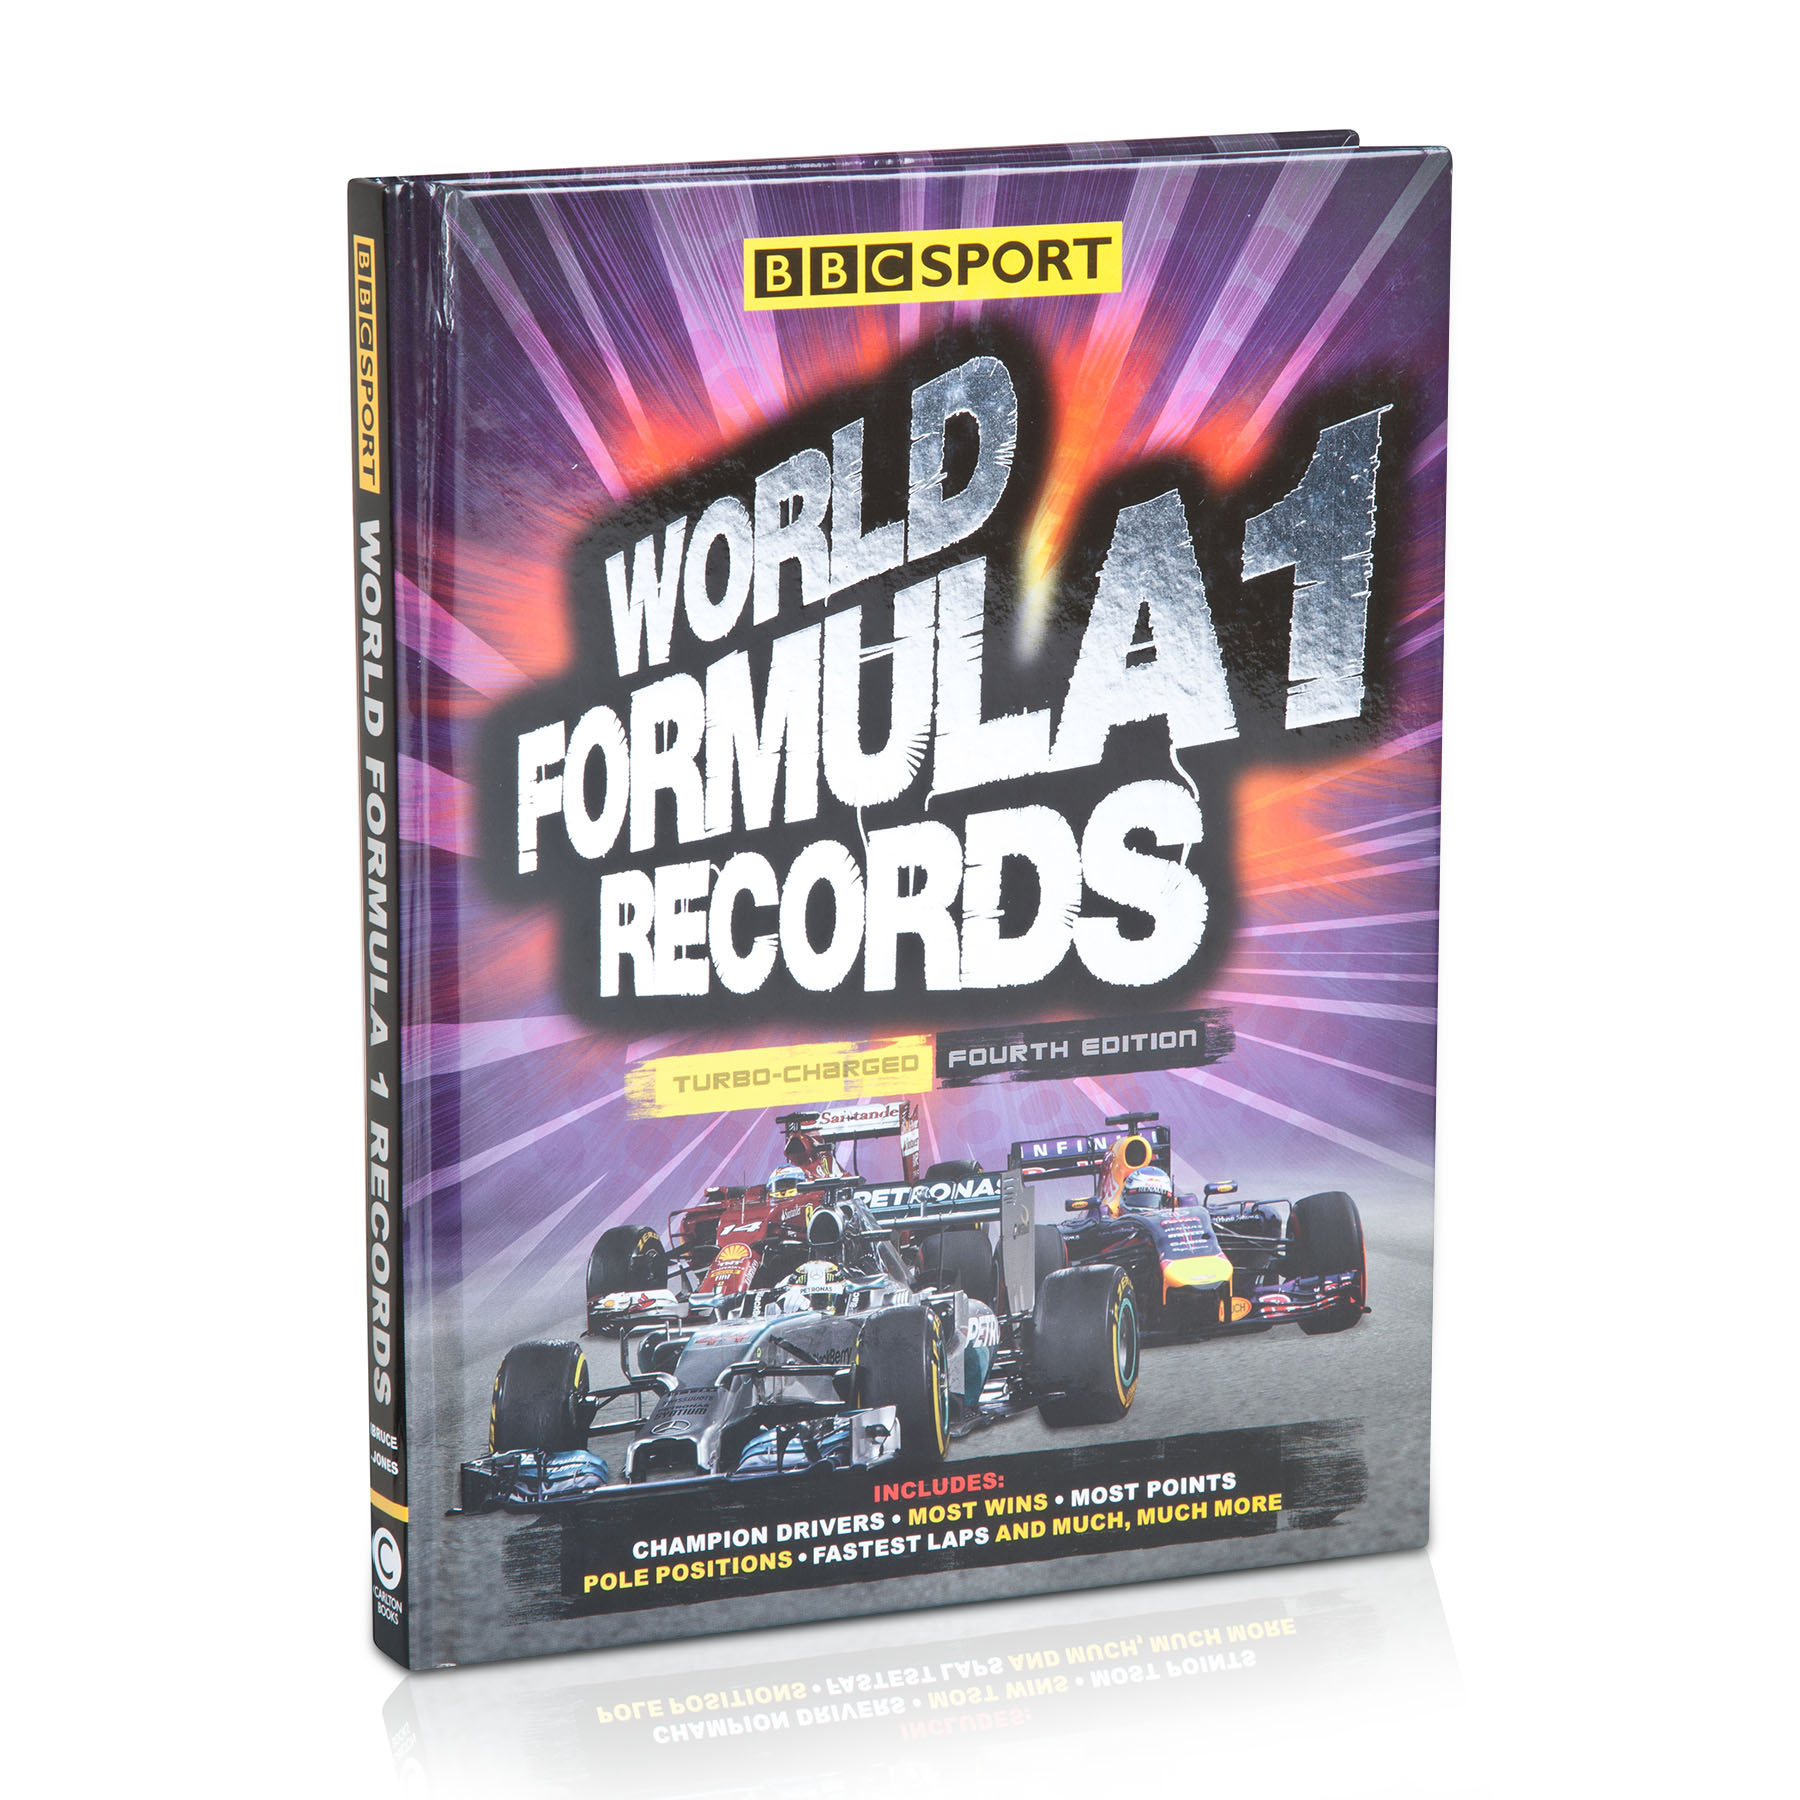 Formula One BBC Sport World Formula 1 Records - Fourth Edition